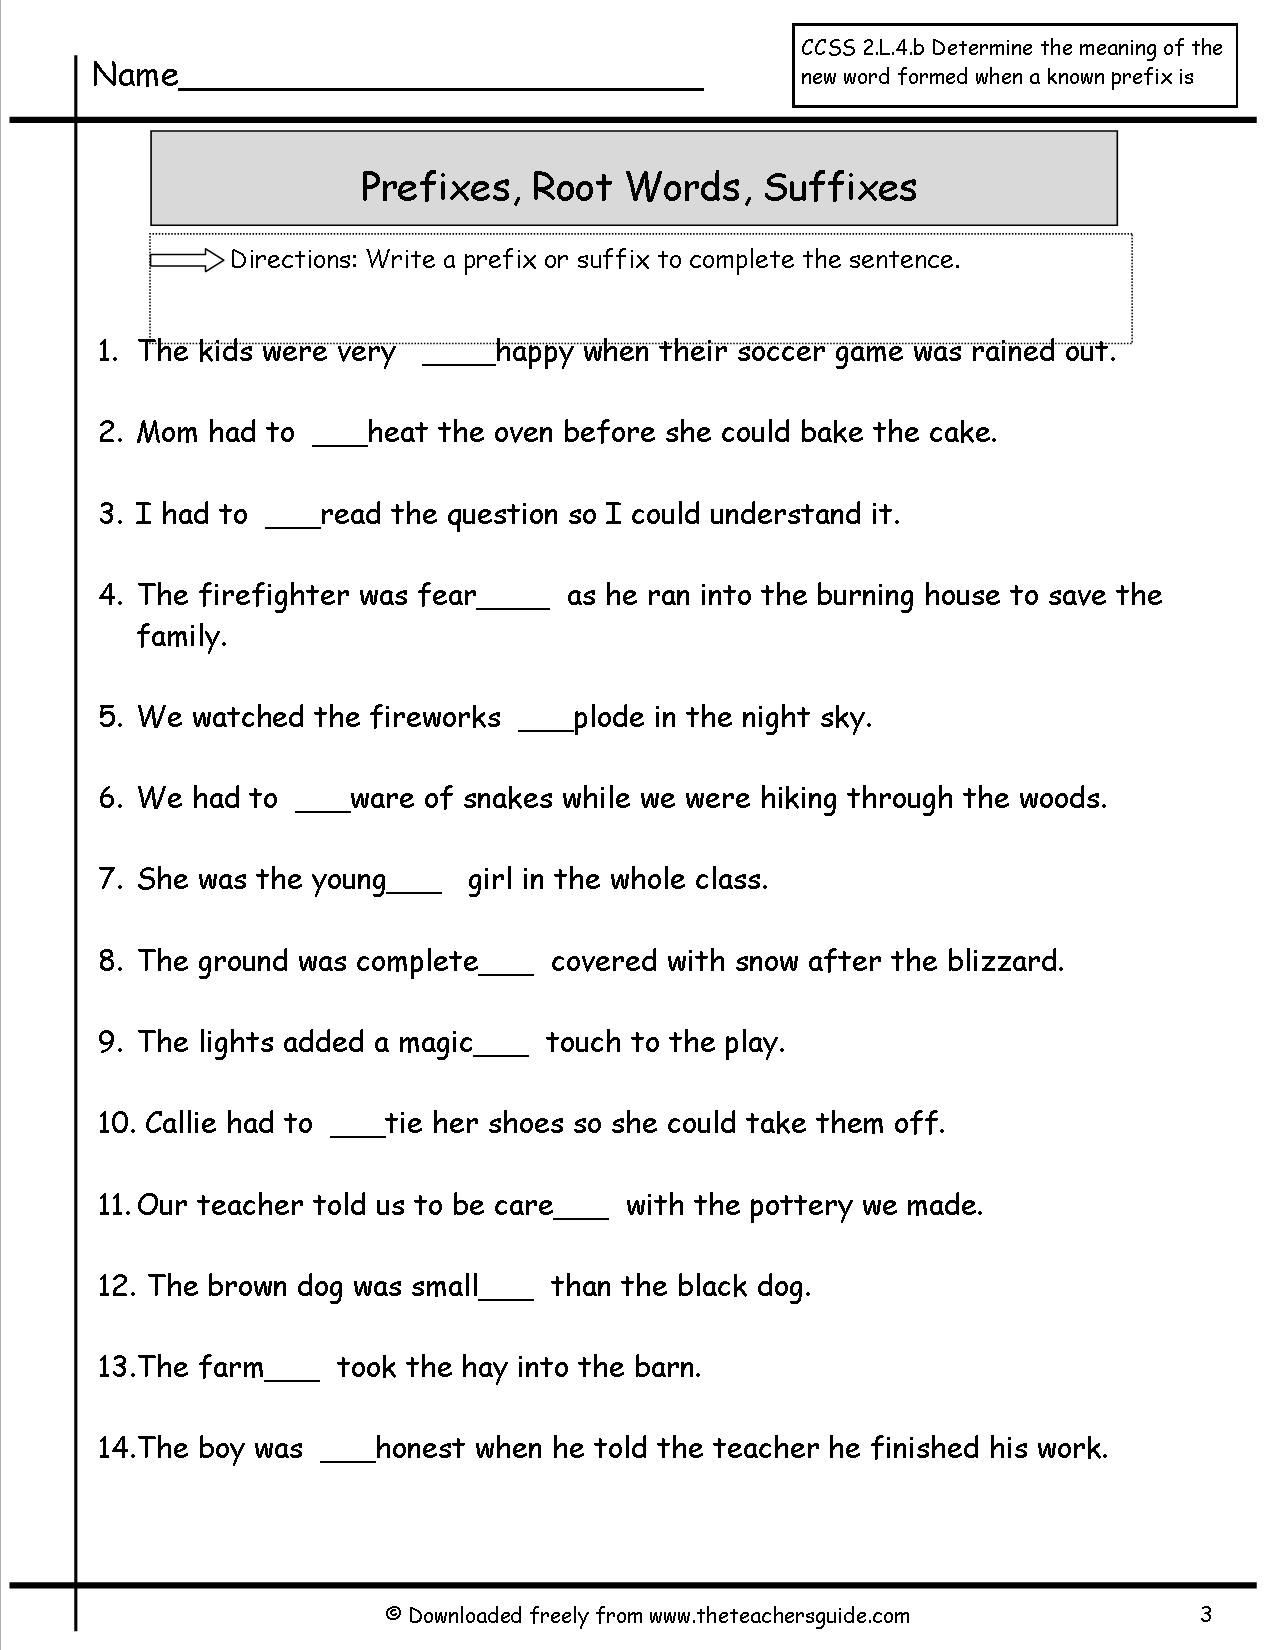 Prefix Worksheets 4th Grade Prefixes Suffixes Worksheet